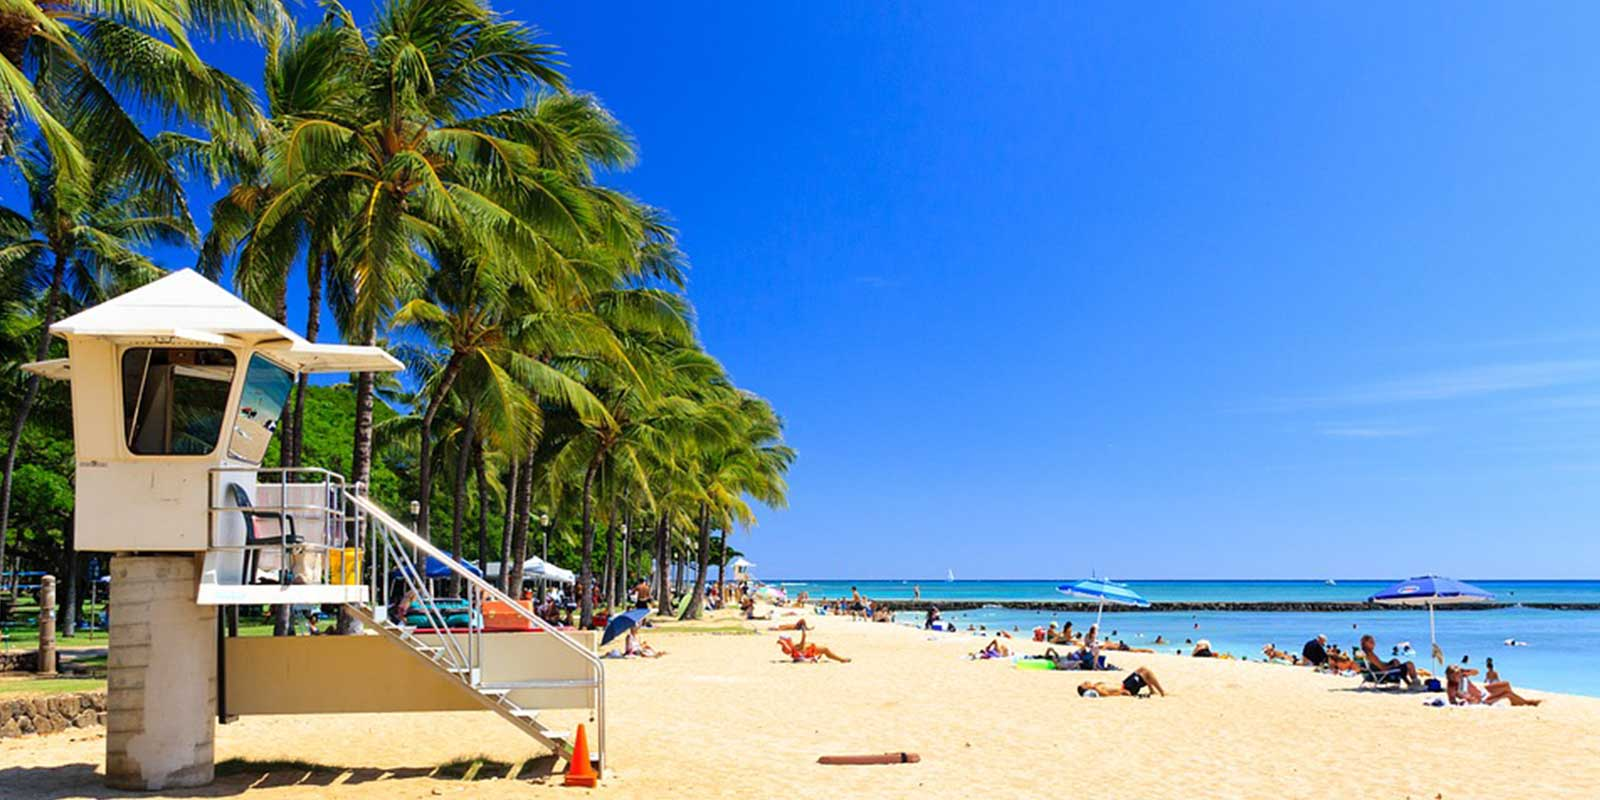 Hawaii 1st US State to Ban Sunscreens Containing chemicals oxybenzone and octinoxate